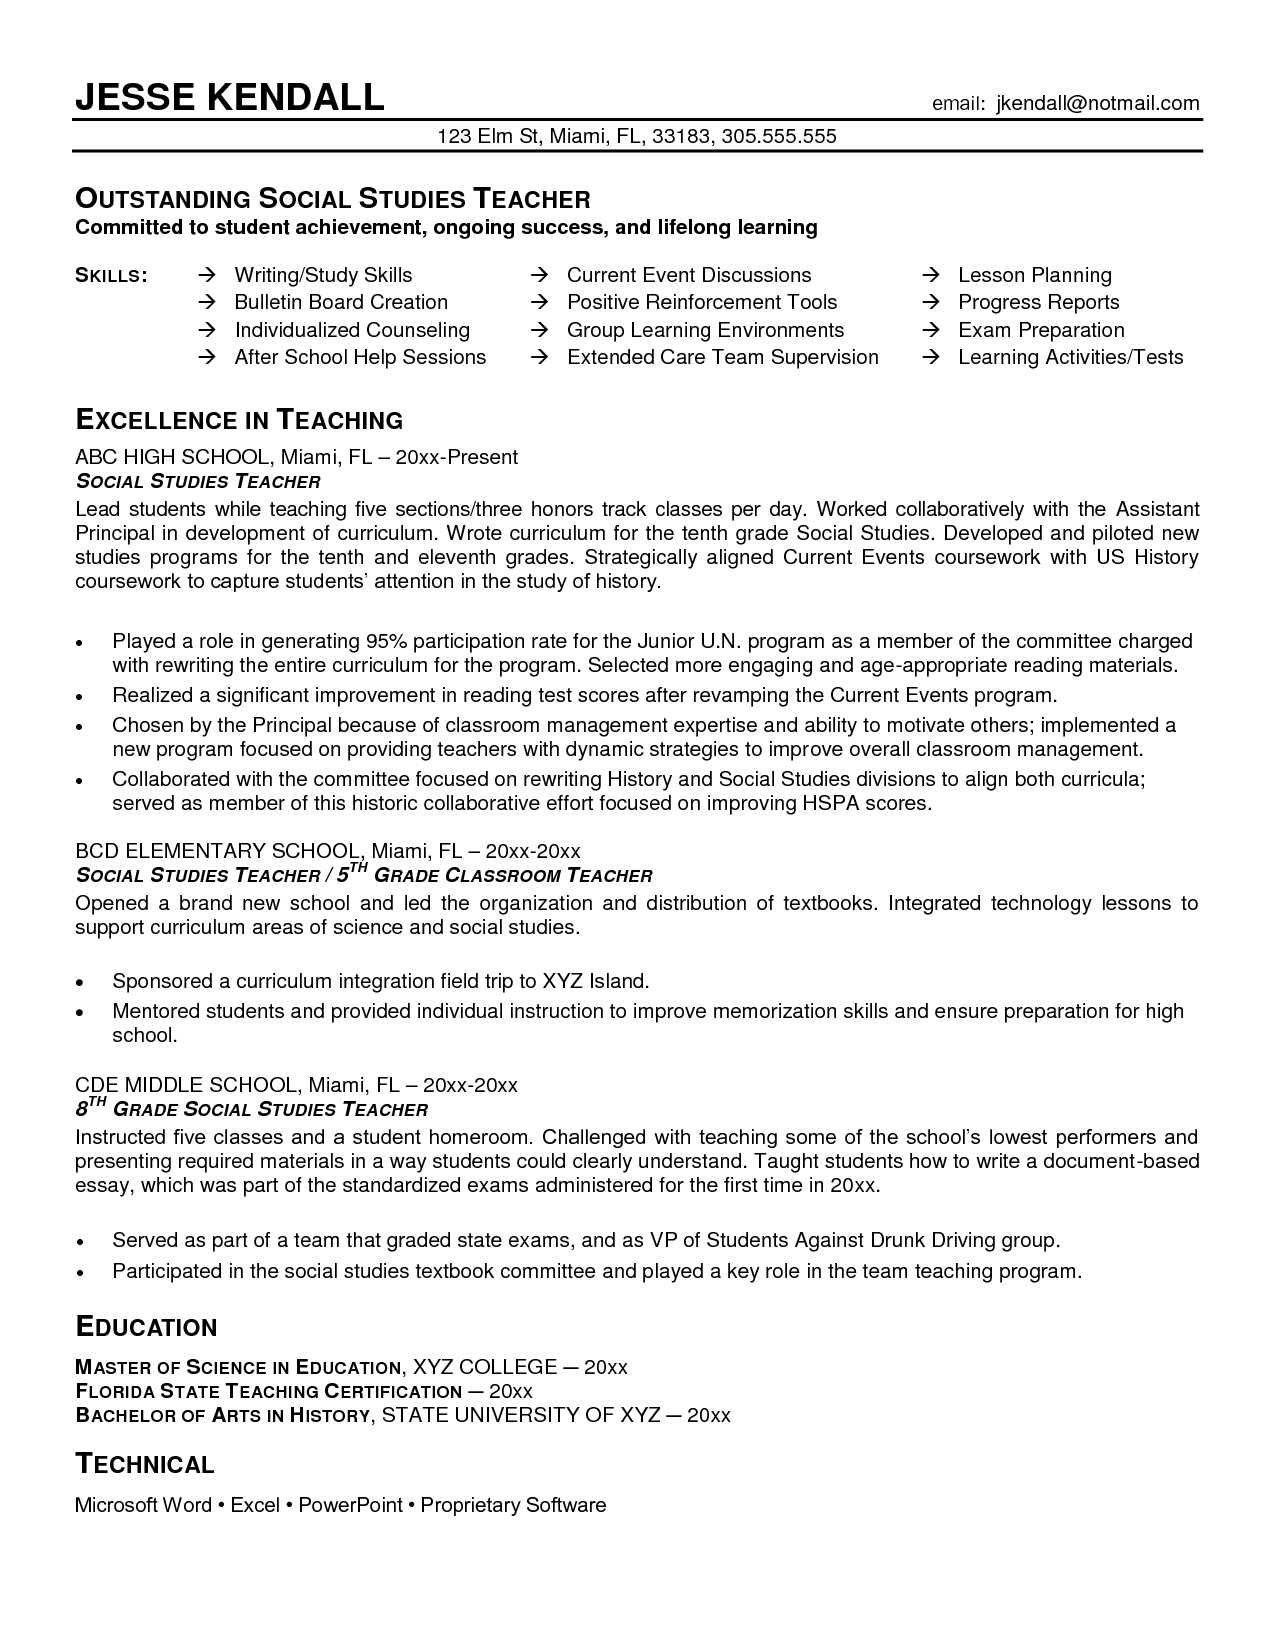 Elementary Teacher Sample Resume Sample Teaching Resume Objectives  Templates Free Objective To .  Elementary Teacher Resume Objective